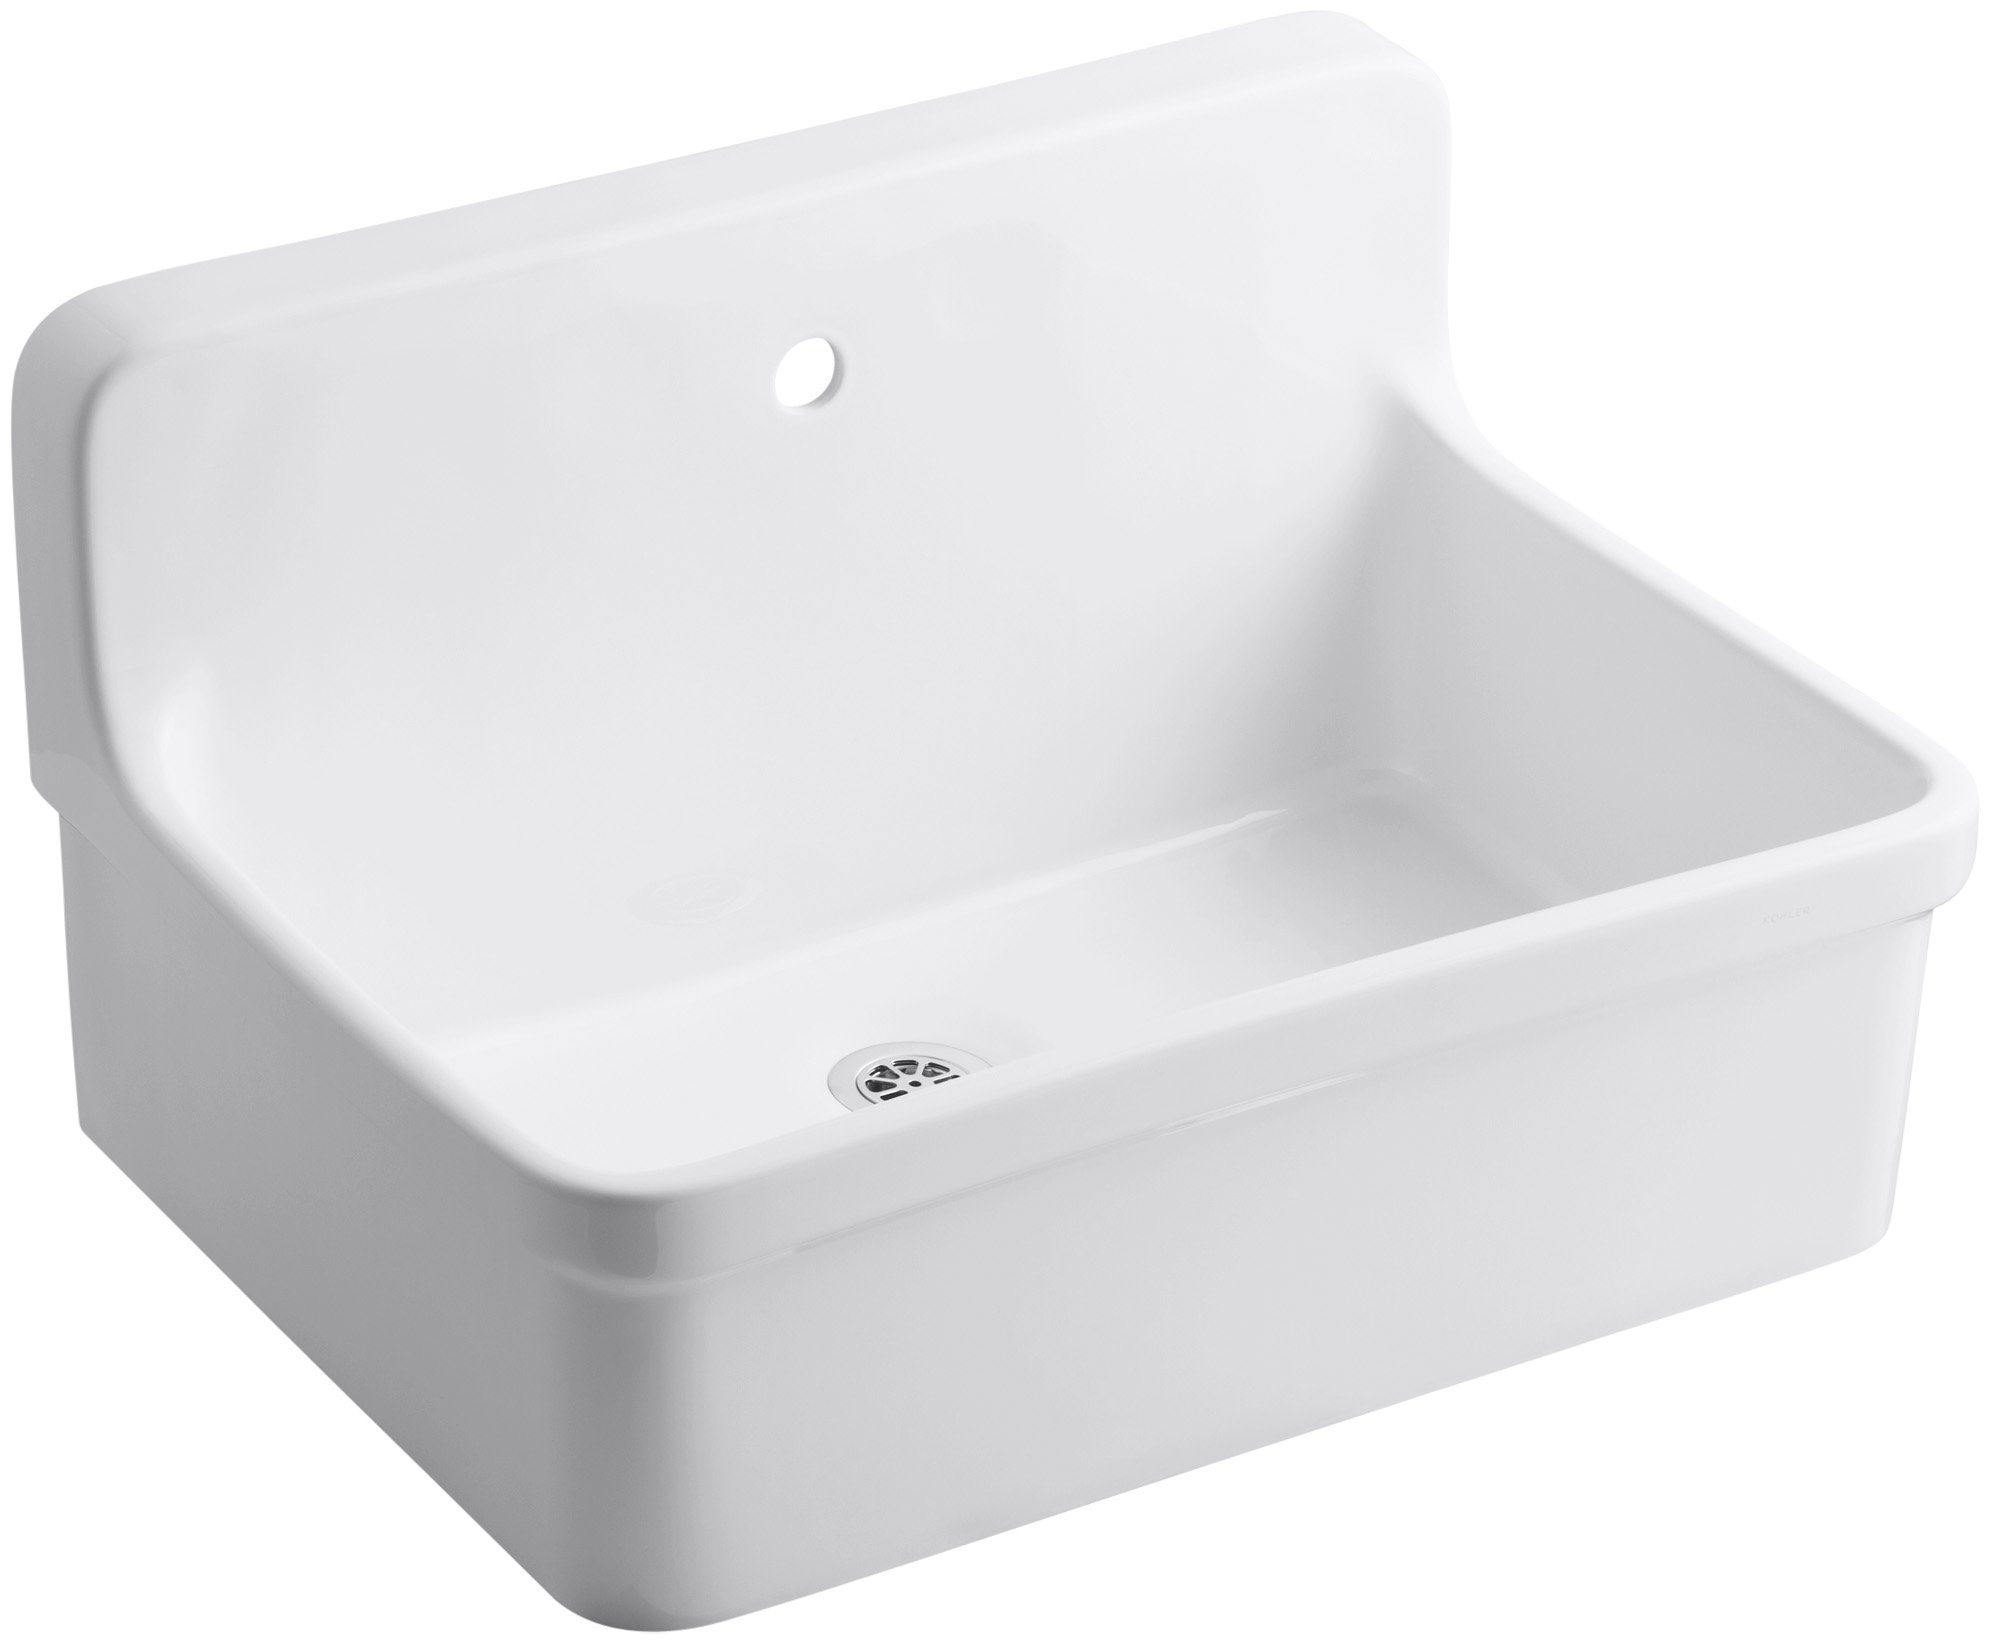 KOHLER K-12781-0 Gilford Scrub-Up Plaster Sink, White